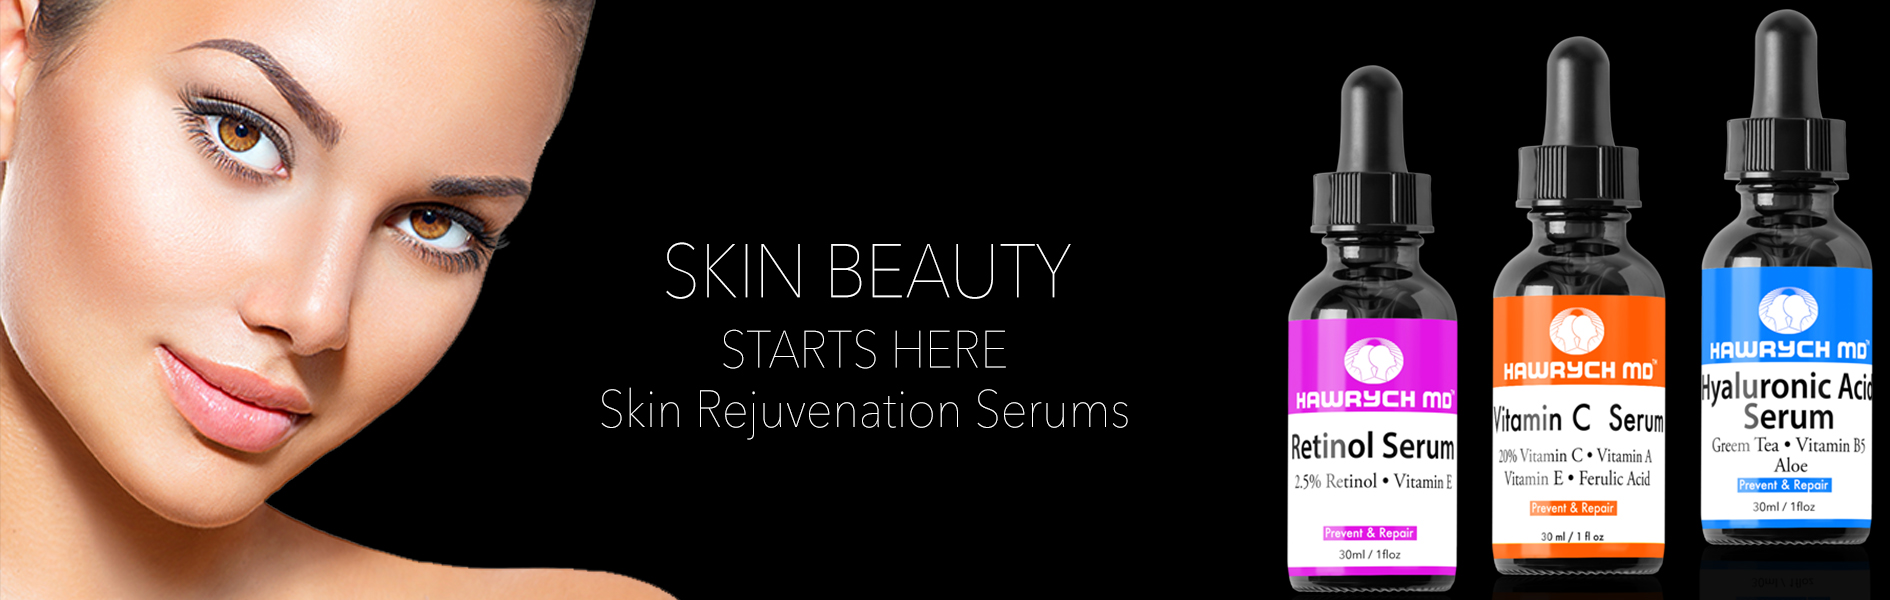 hawrych mdskin rejuvenation anti aging skin serums